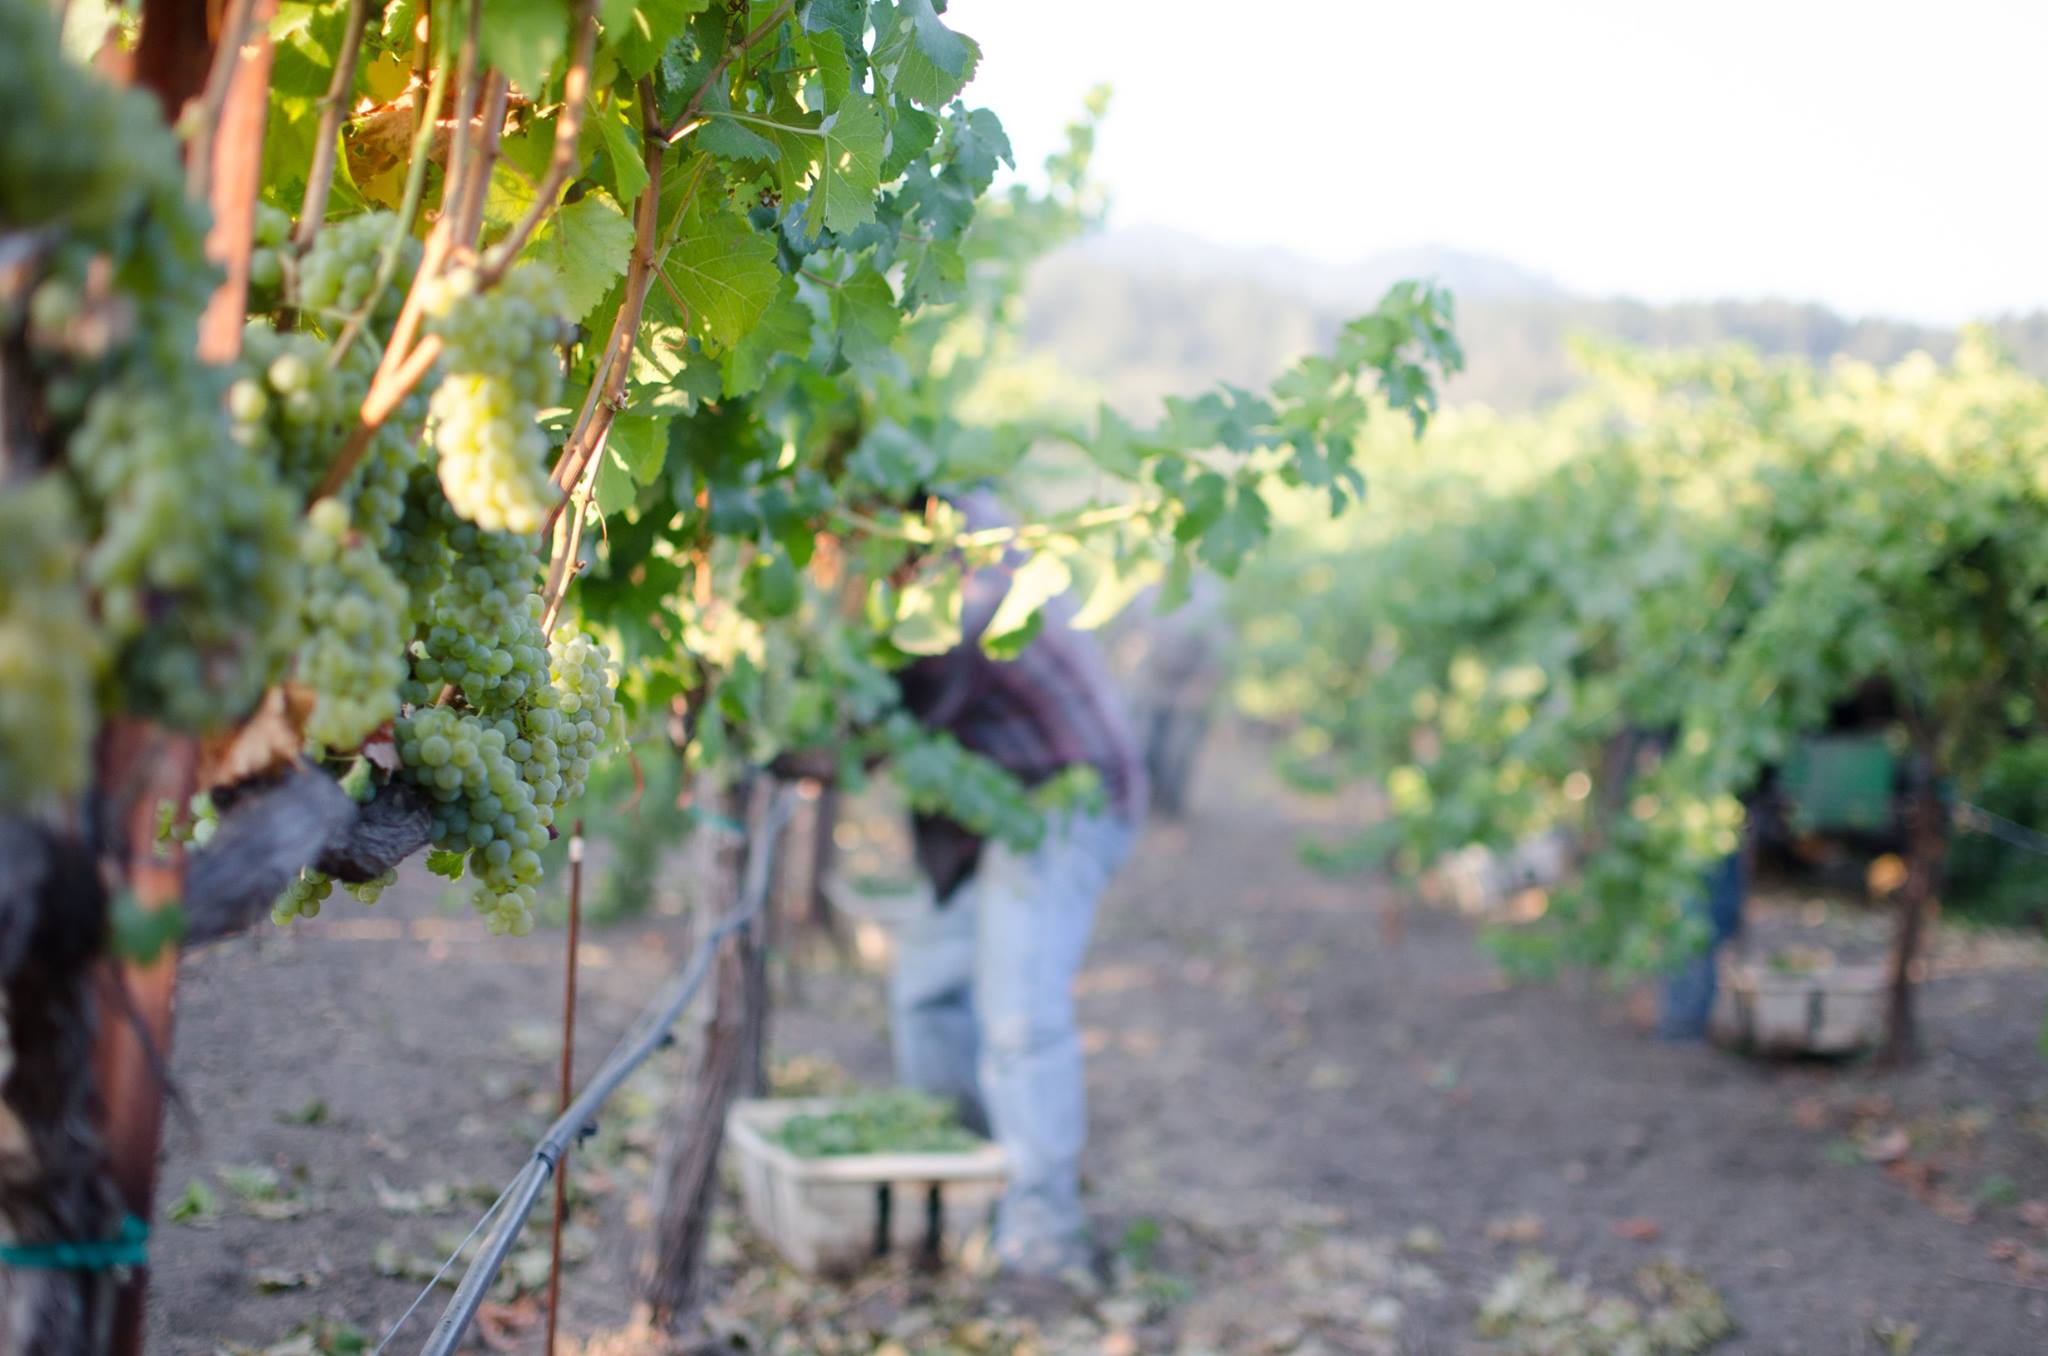 The first pick of the season: Sauvignon Blanc at Frediani Vineyard from Three Clicks.